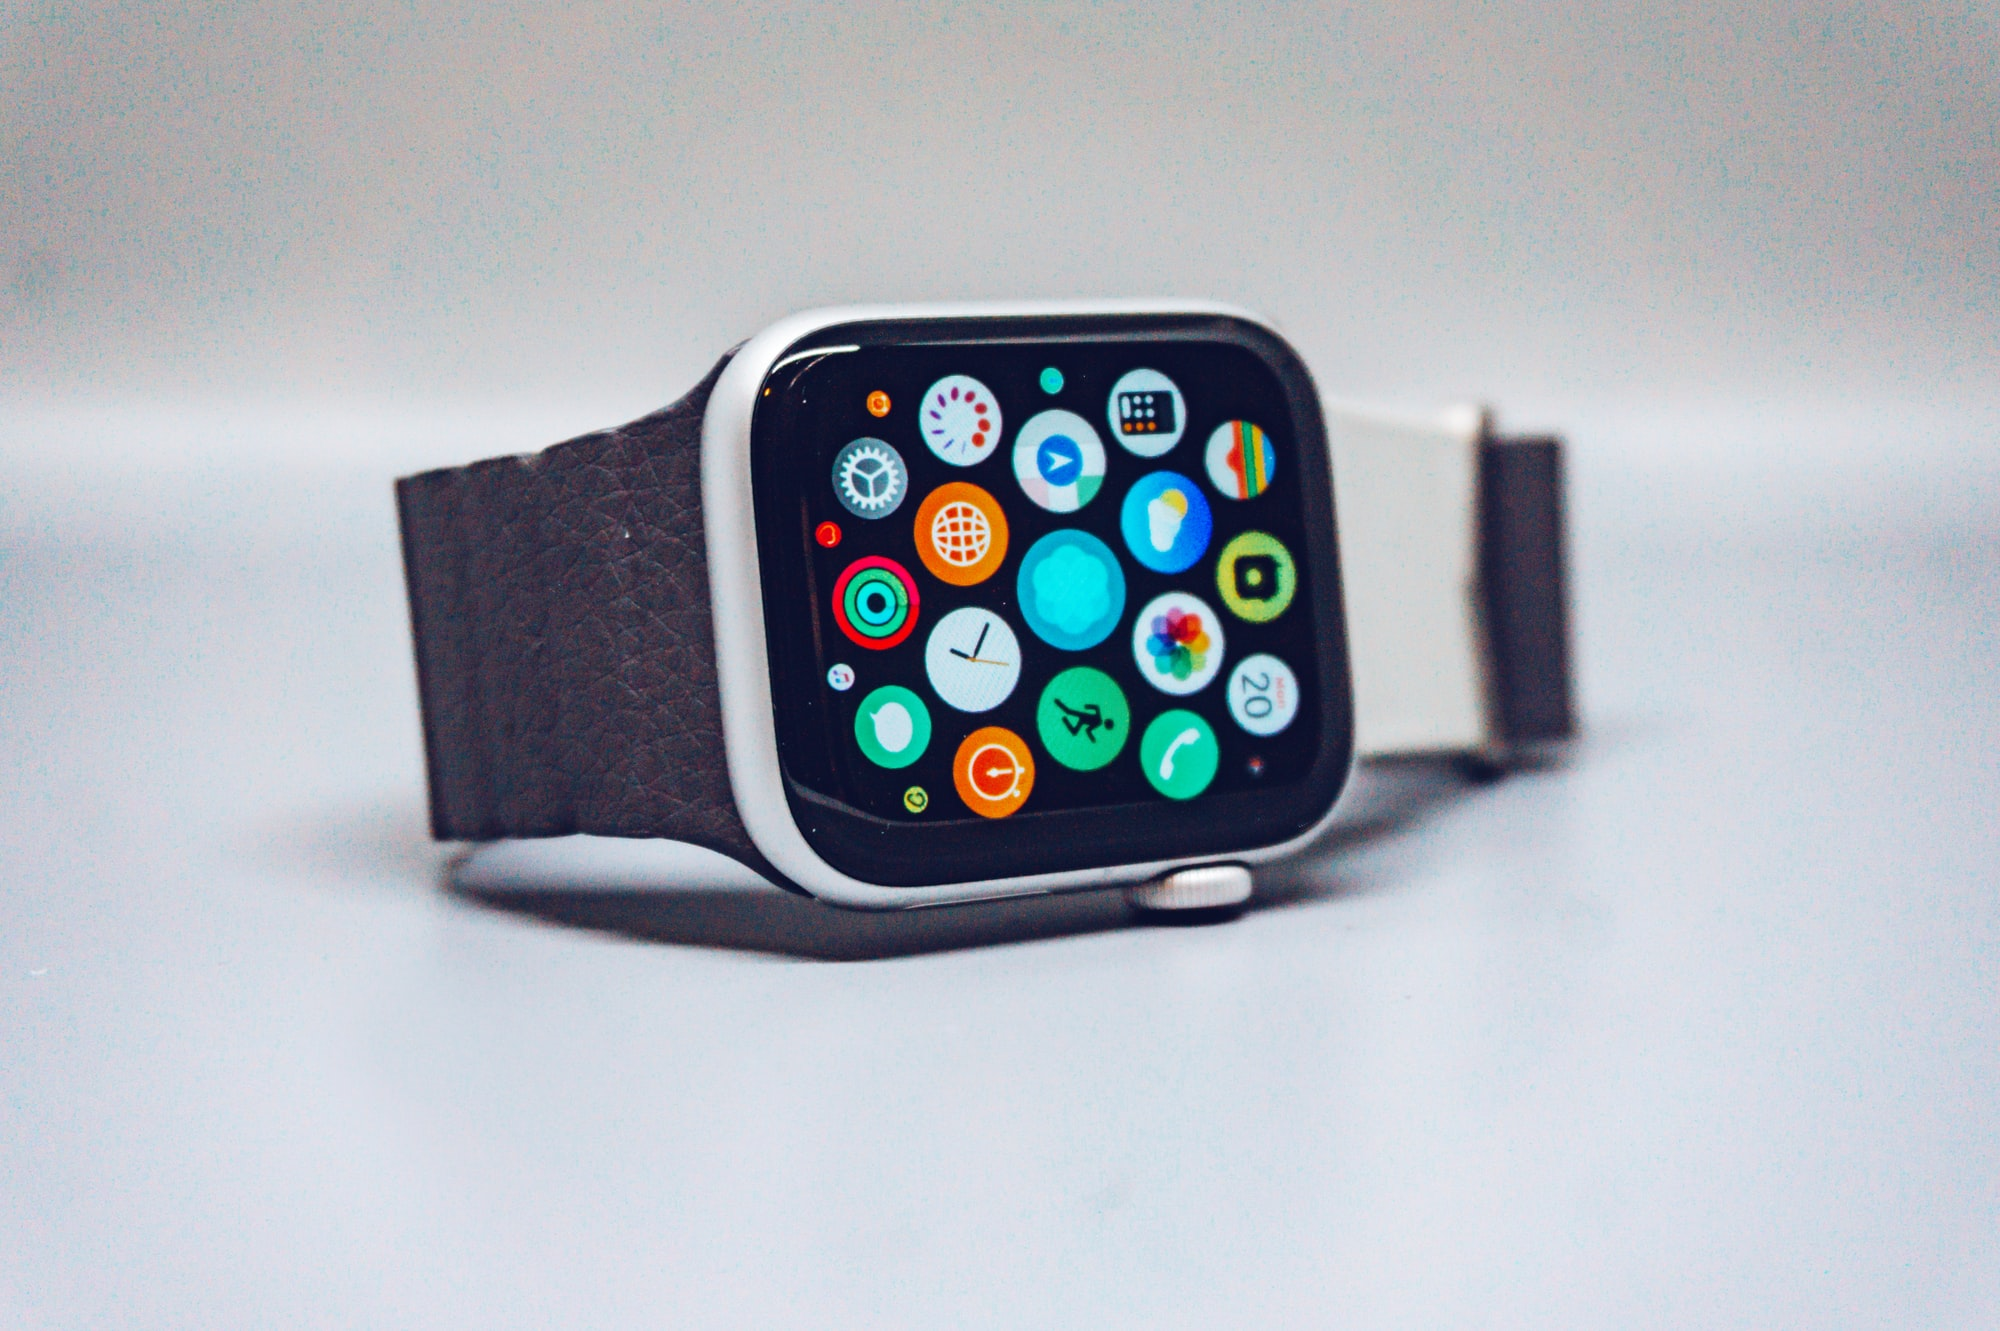 Perdi o Apple Watch. E agora?